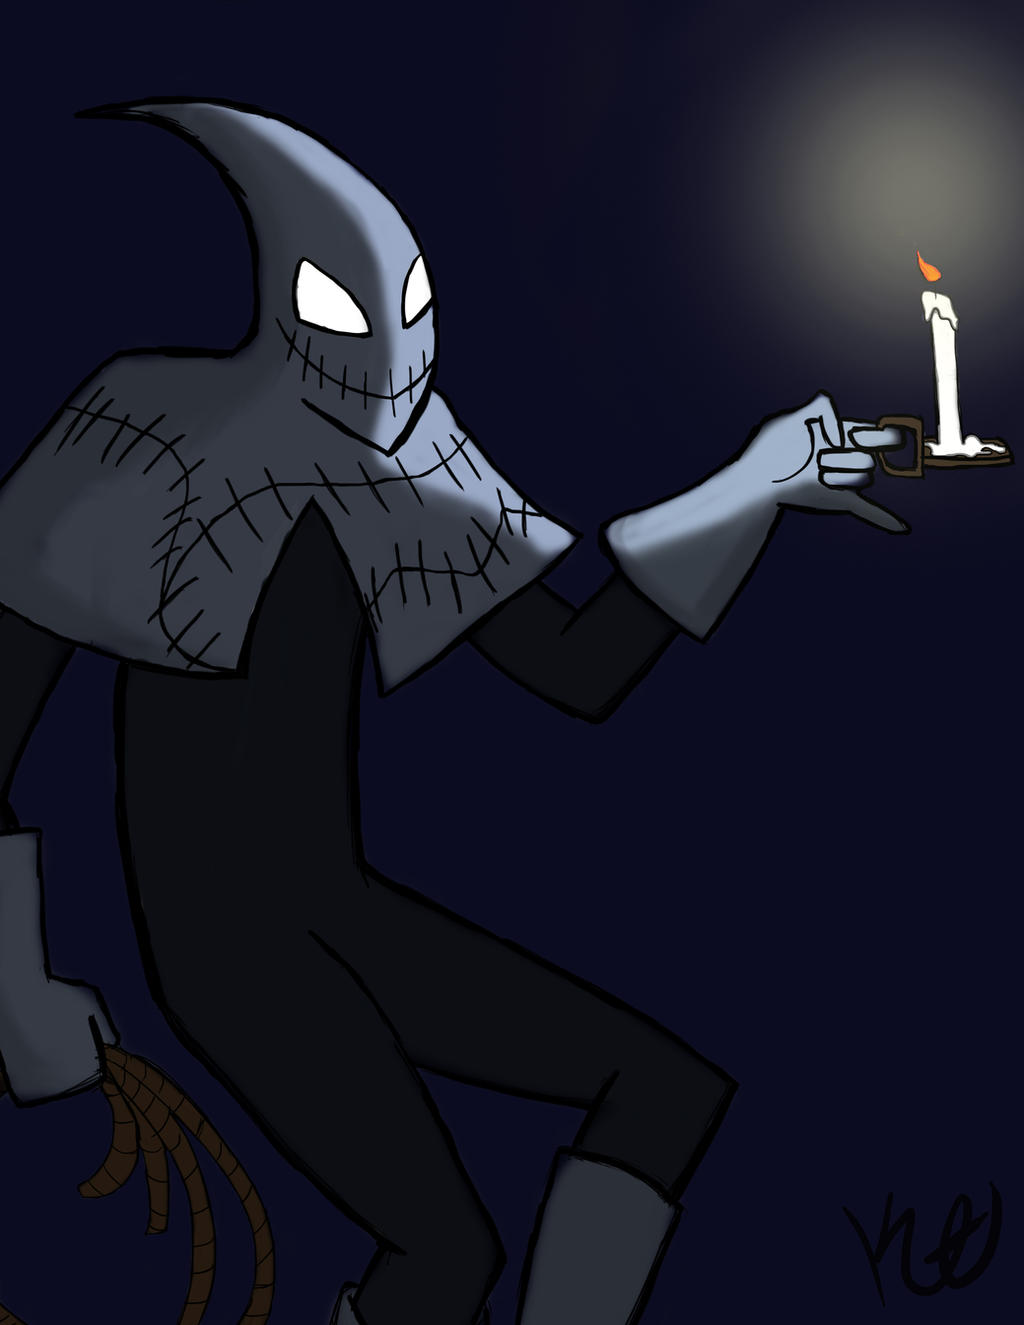 Candlejack by DrawMeAPonyNamedBob on DeviantArt